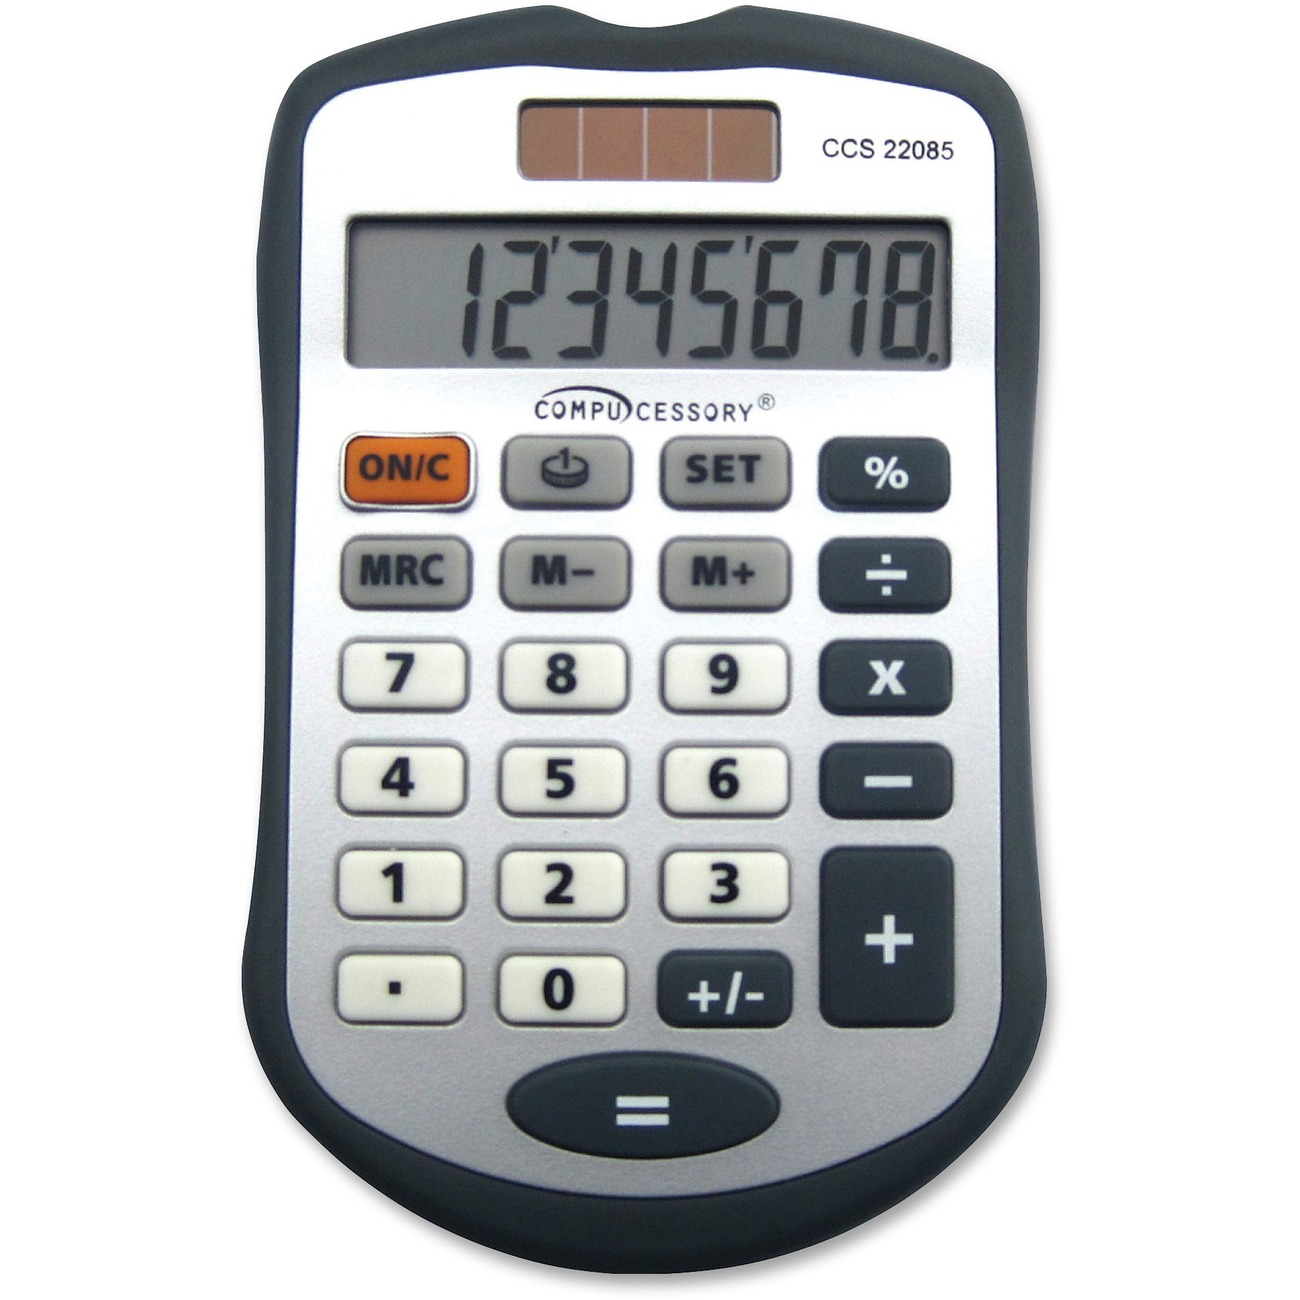 west coast office supplies technology office machines handheld calculator displays up to eight digits soft rubber keys allow you to accurately punch the correct numbers four function memory is great for